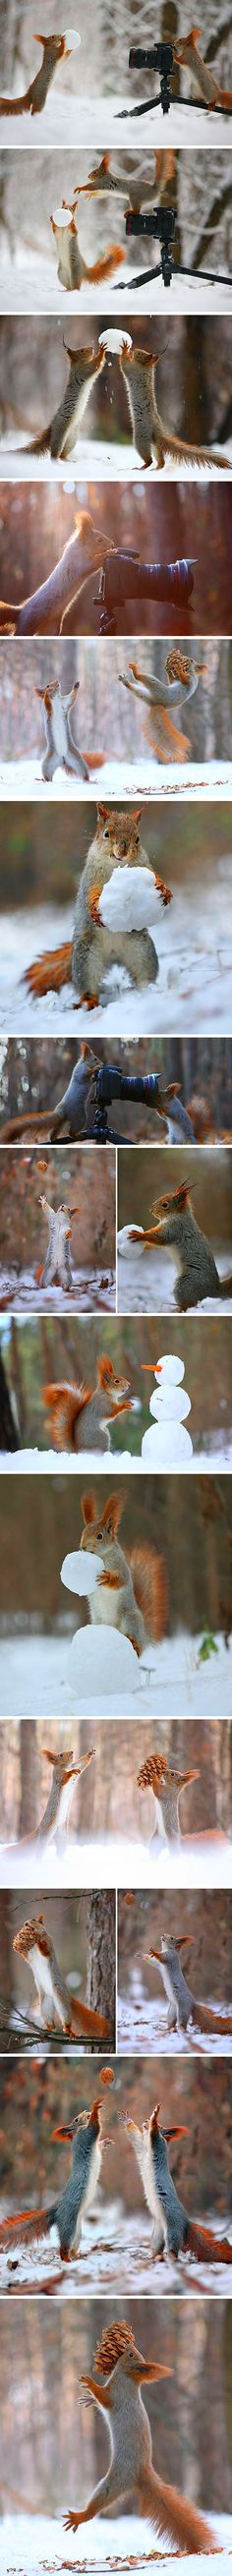 Photographer Captures the Secret Life of Squirrels, Hilarity Ensues - TechEBlog